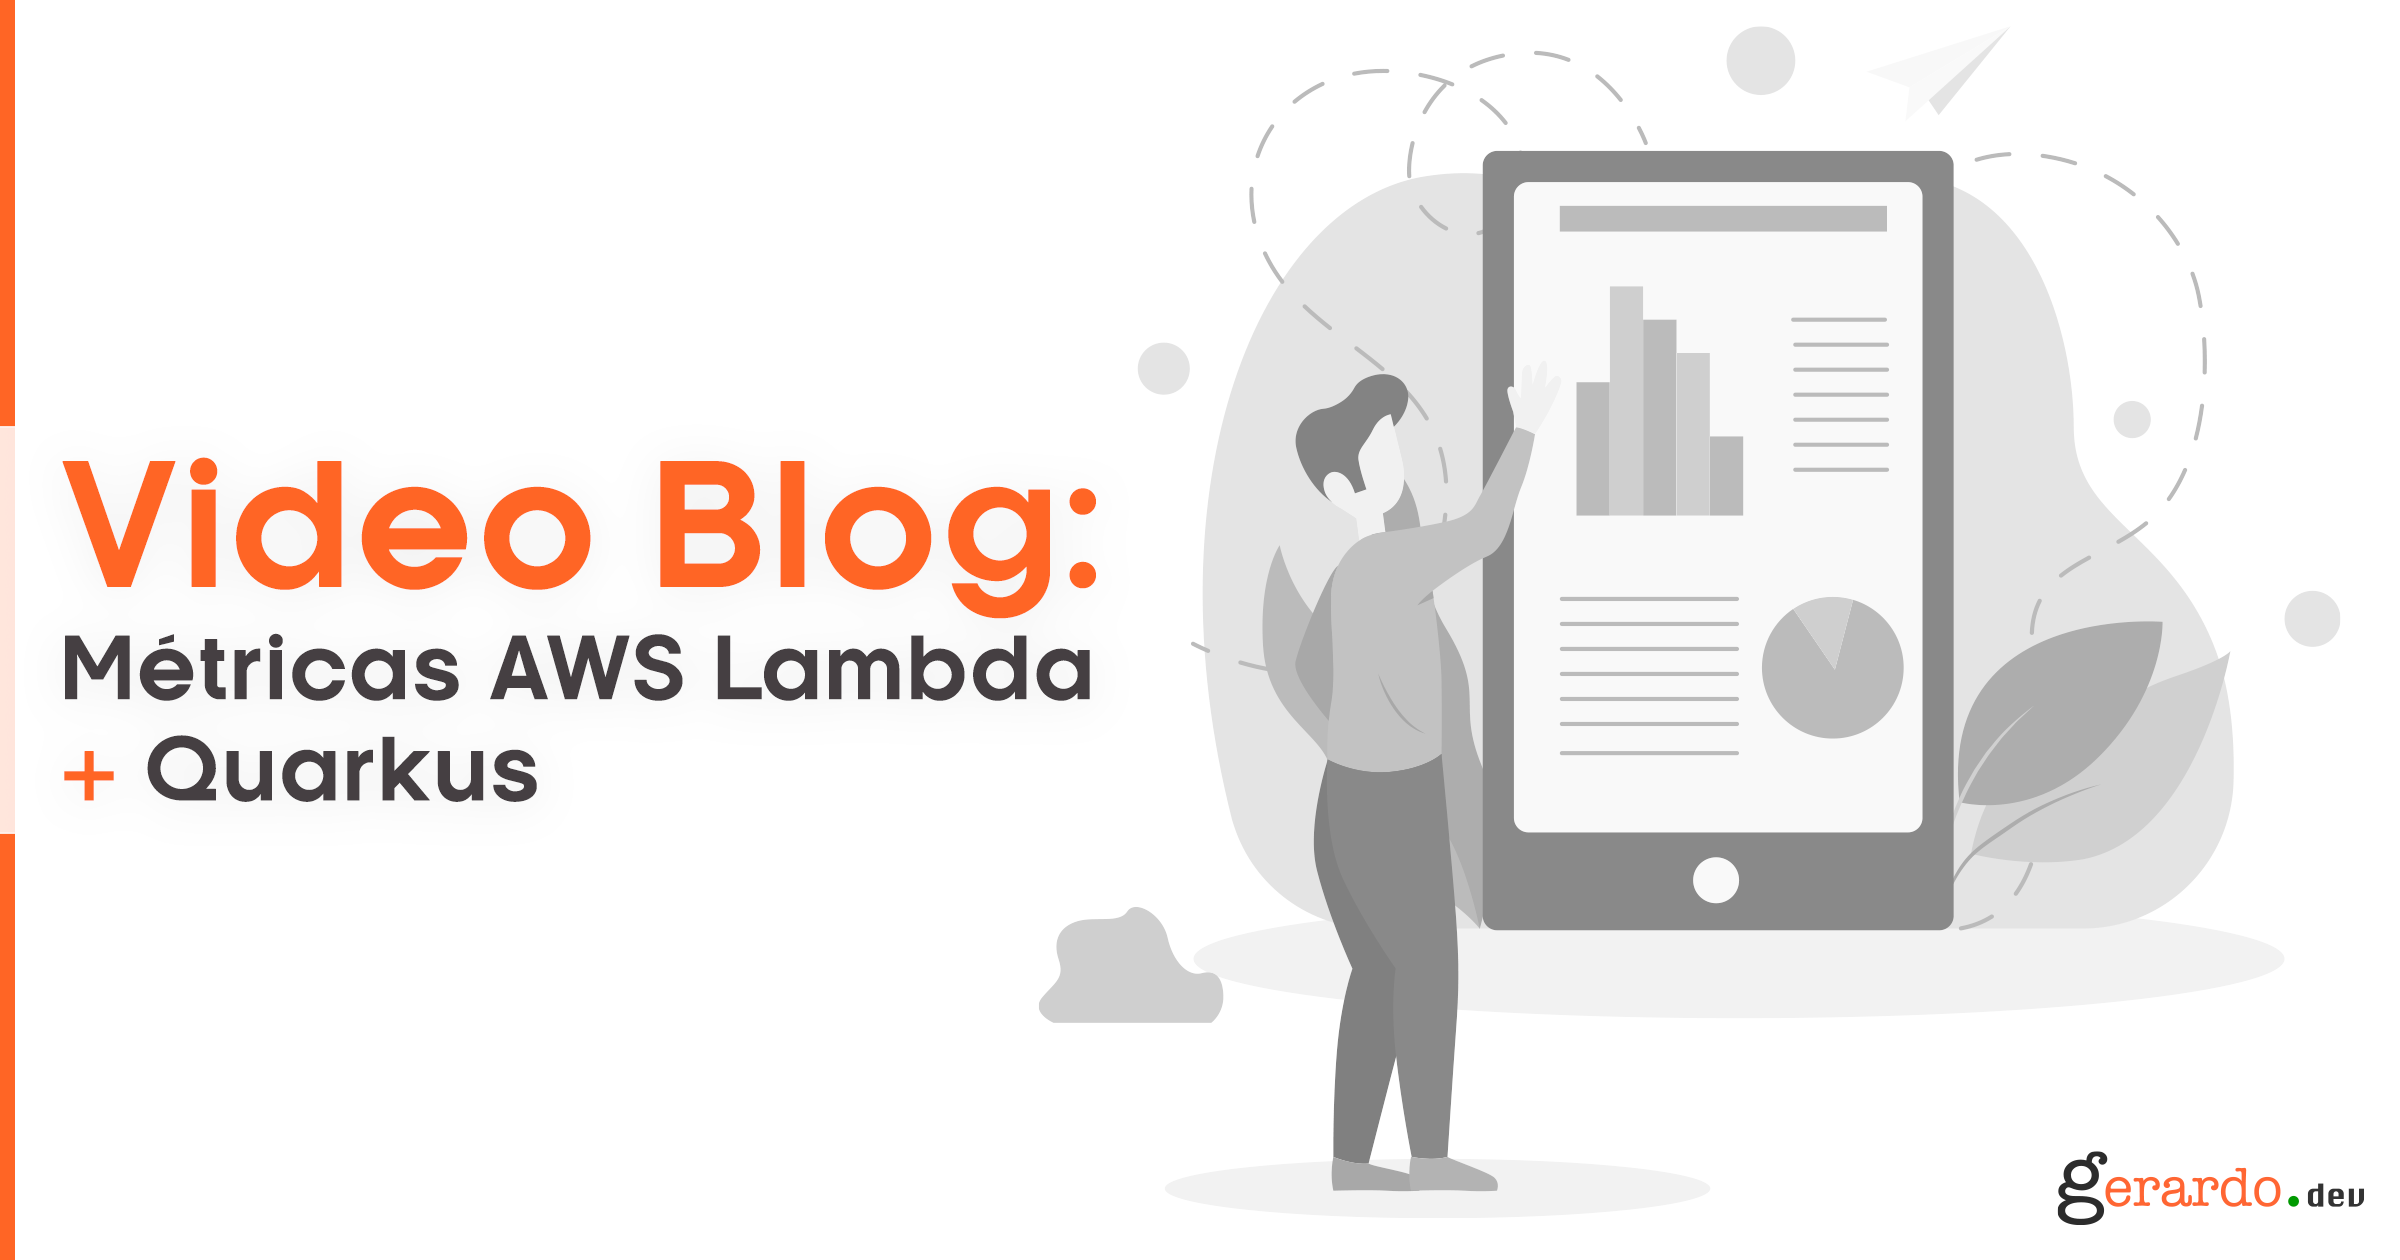 Video Blog: Métricas AWS Lambdas y Quakus